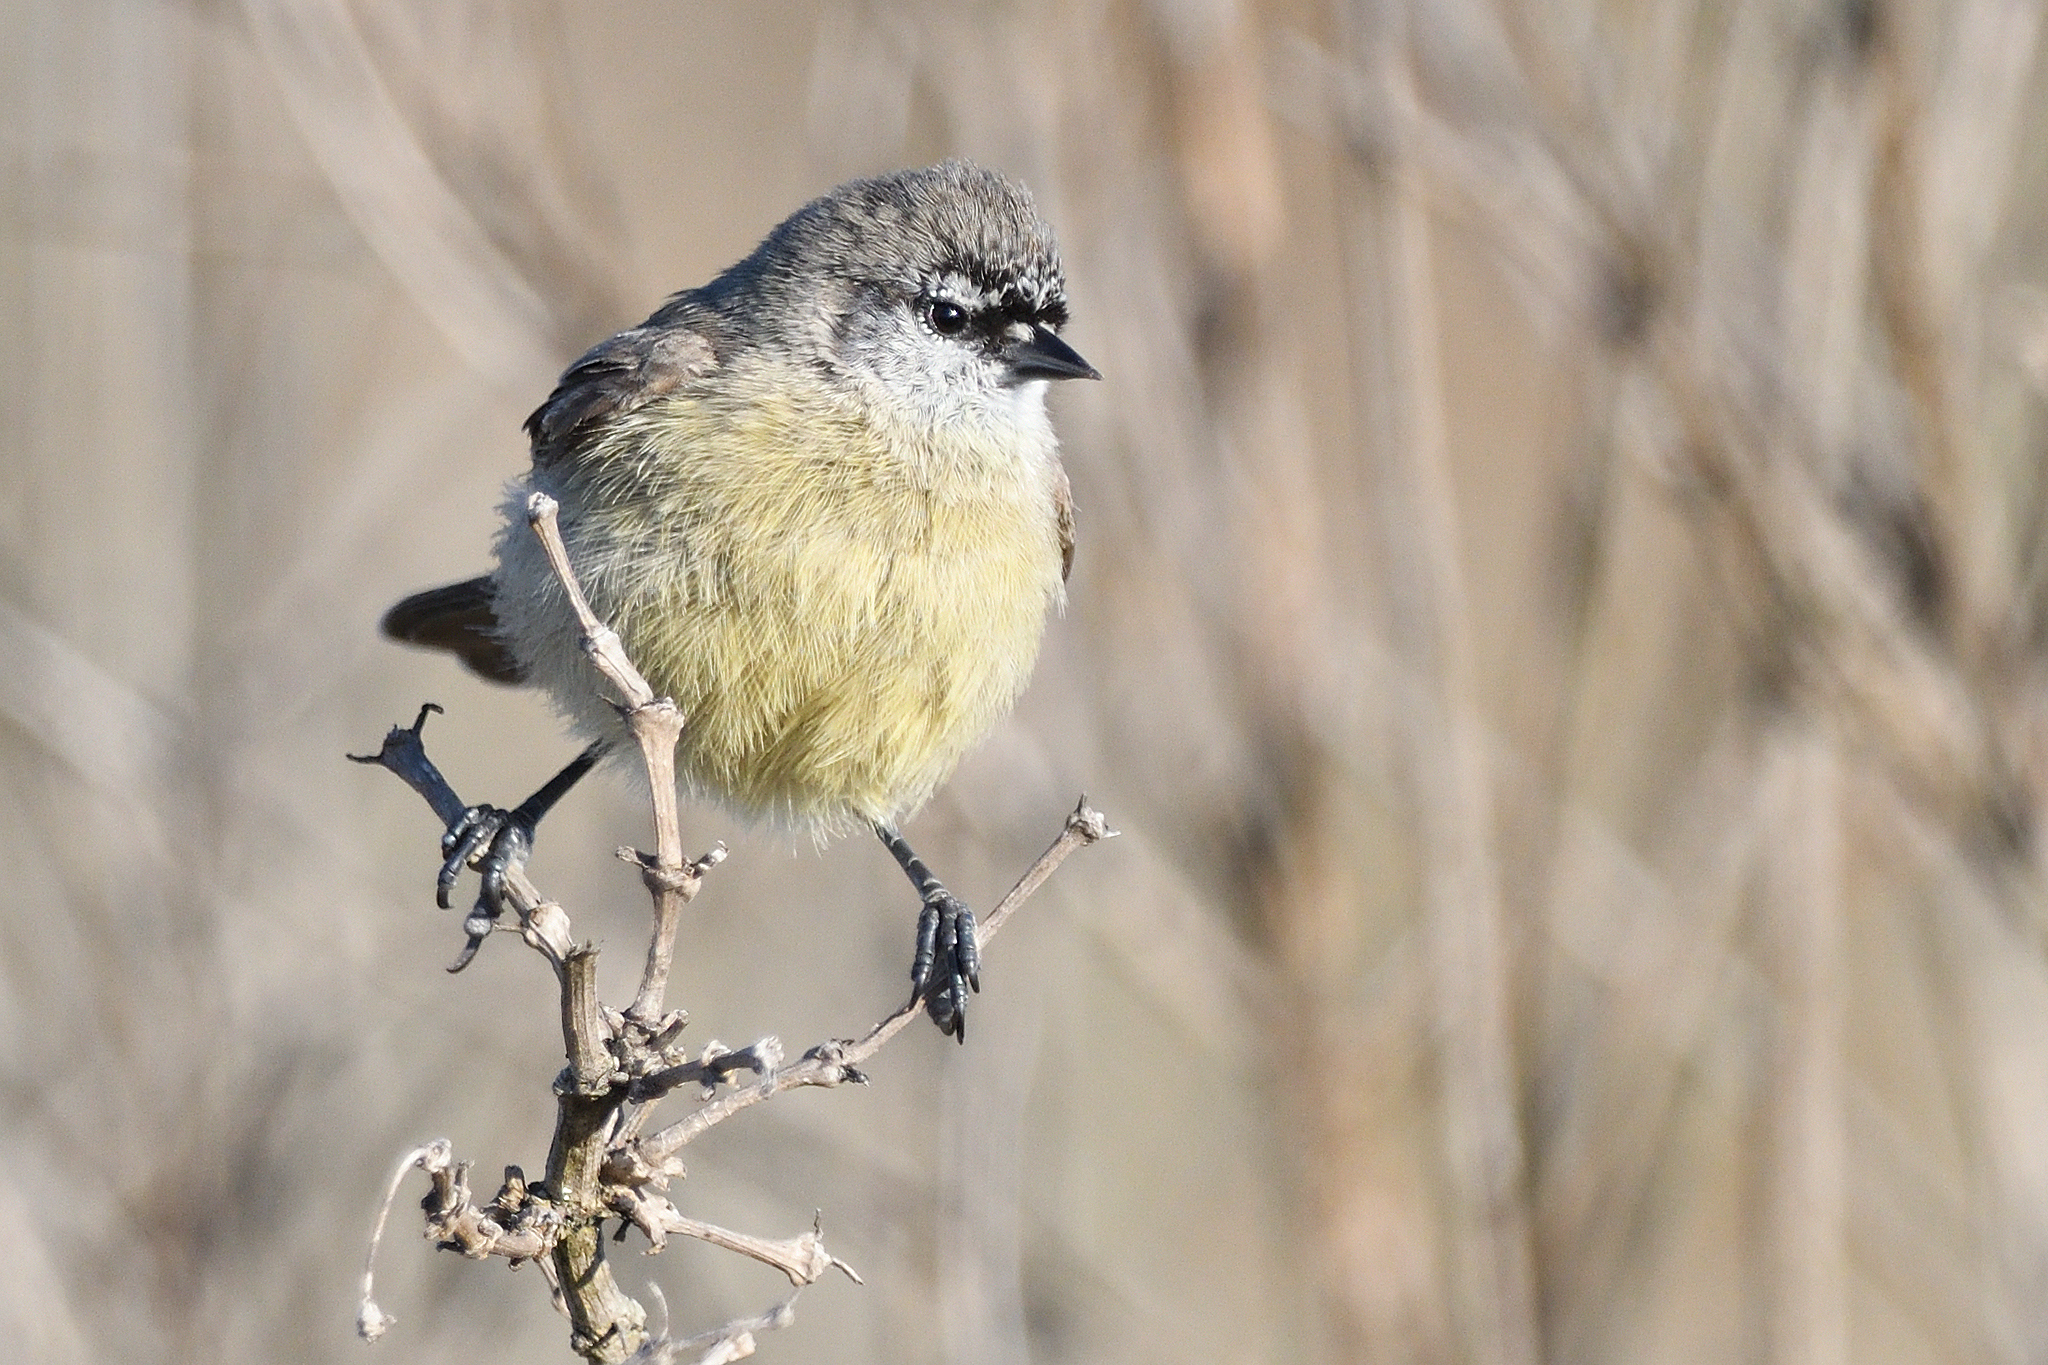 Cape Penduline Tit - WCNP - South Africa